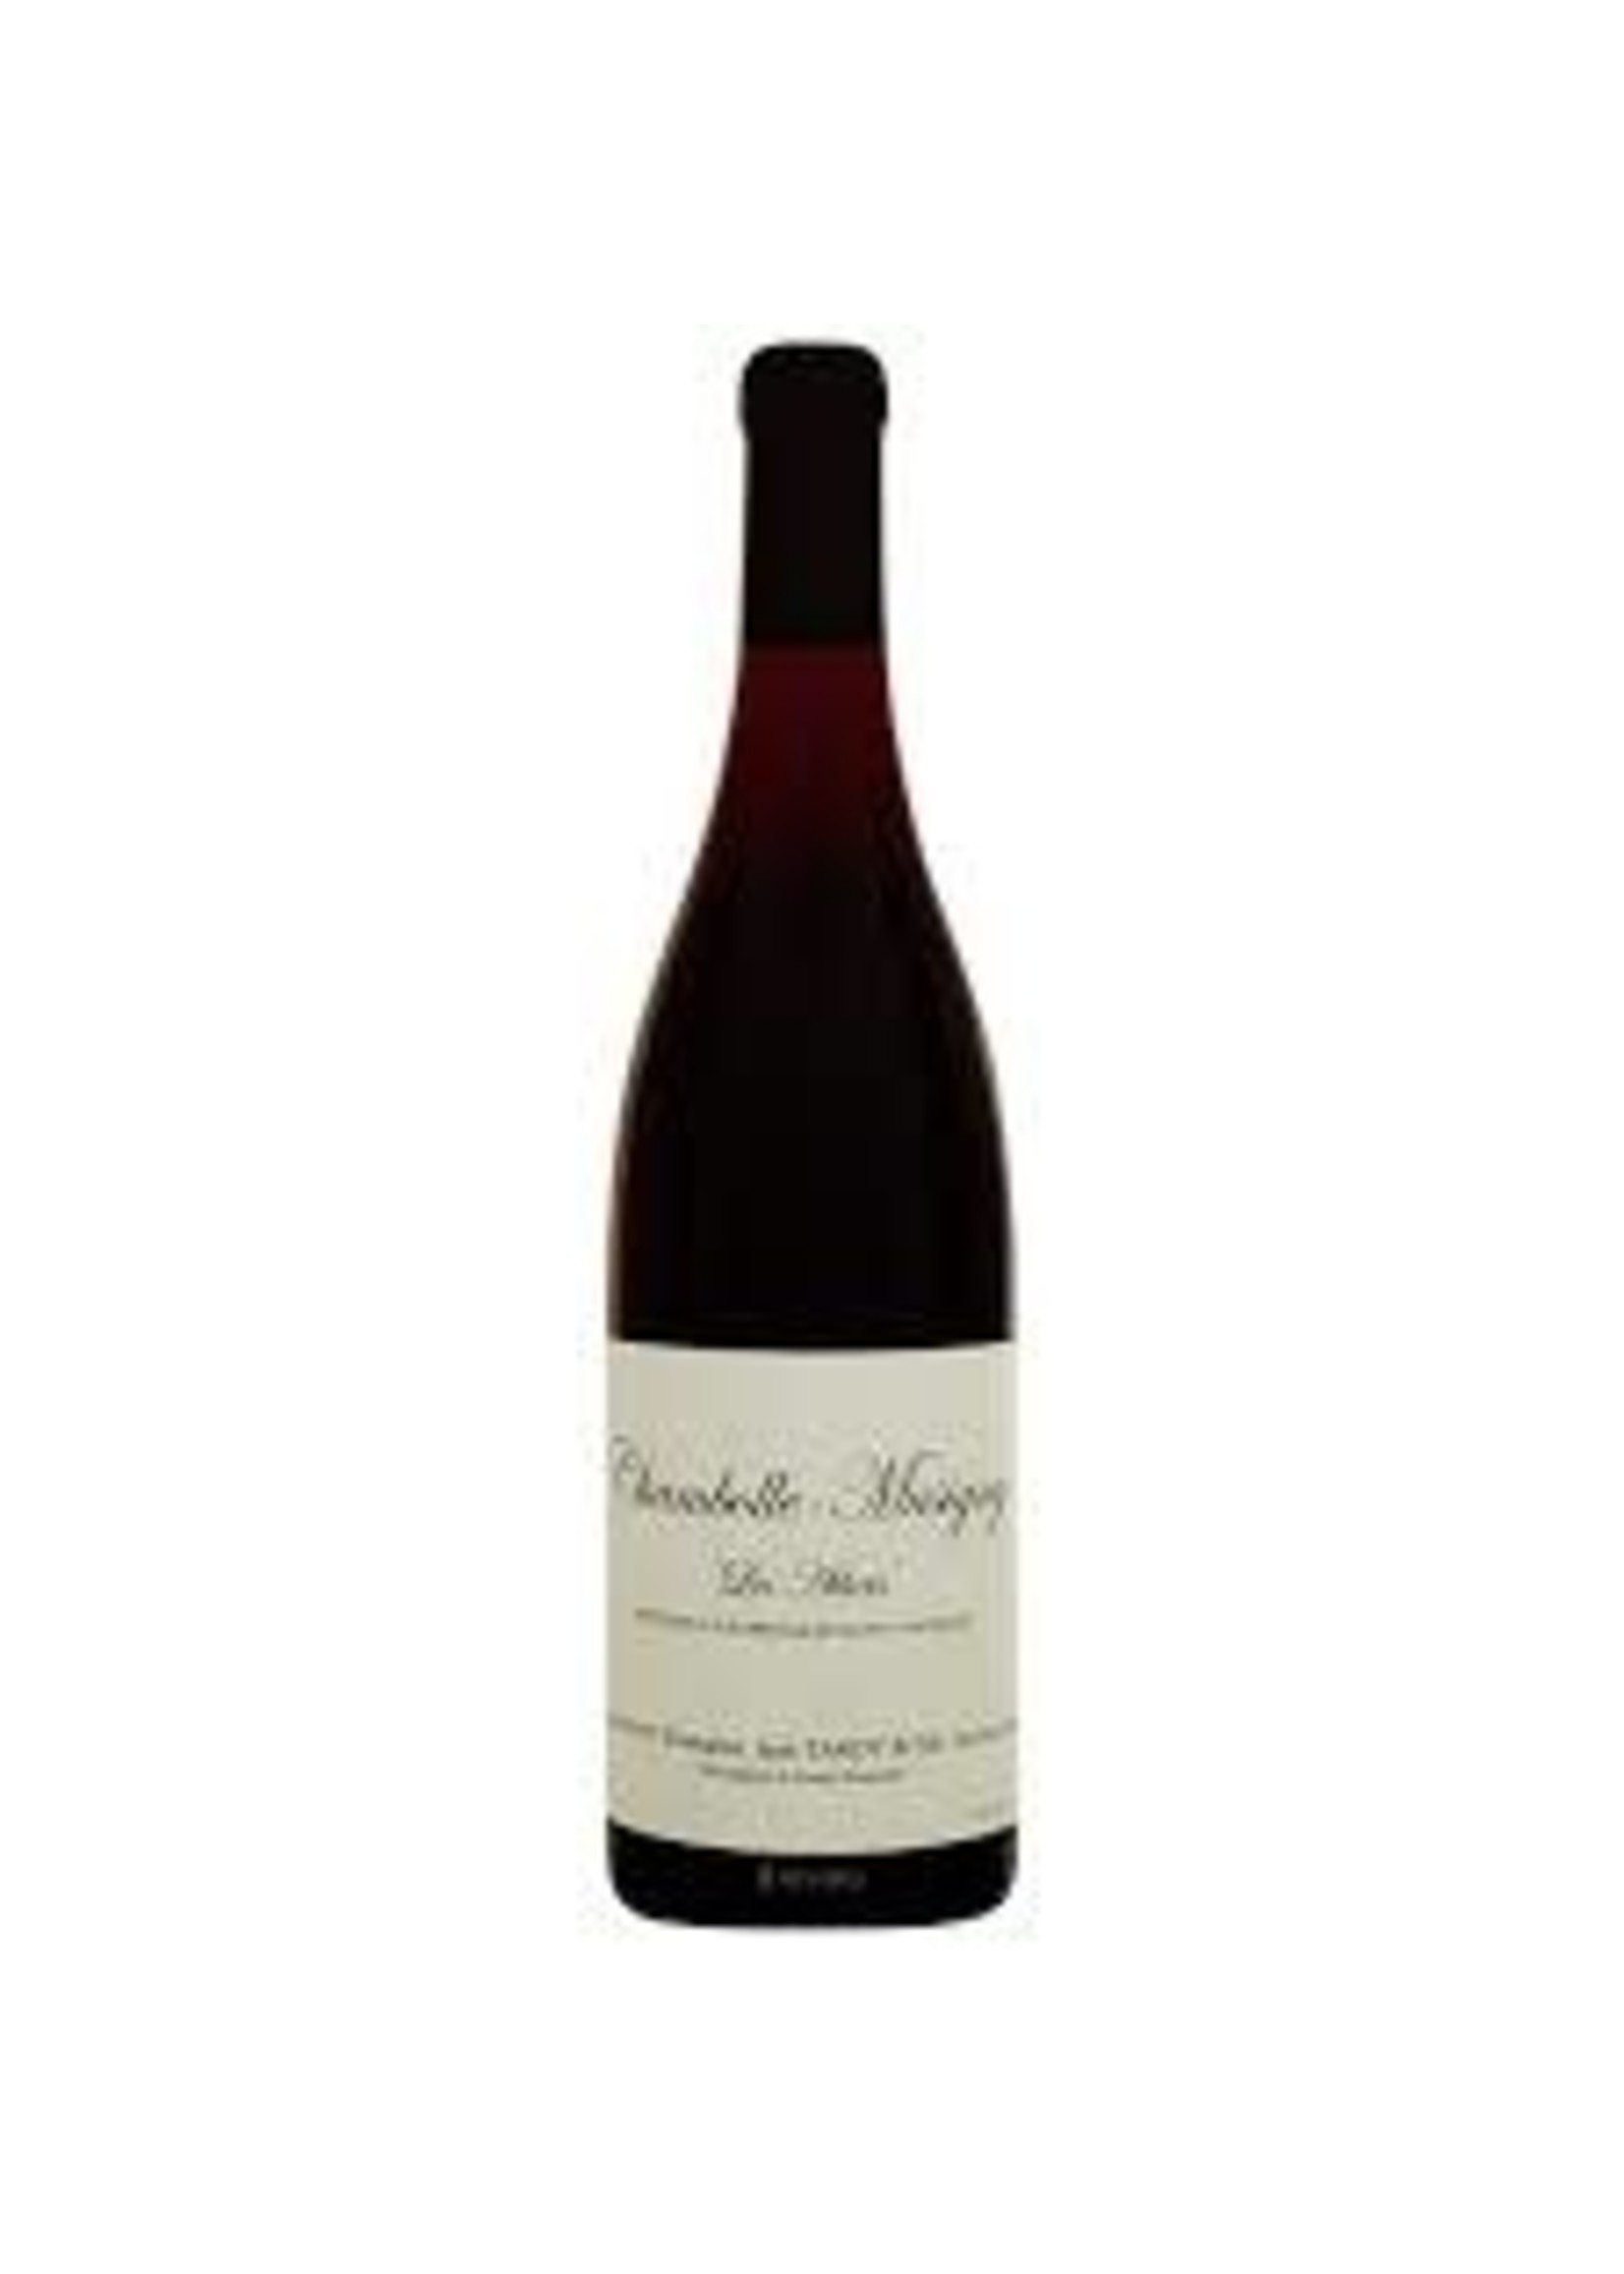 Jean Tardy 2018 Chambolle Musigny Les Athets 750ml